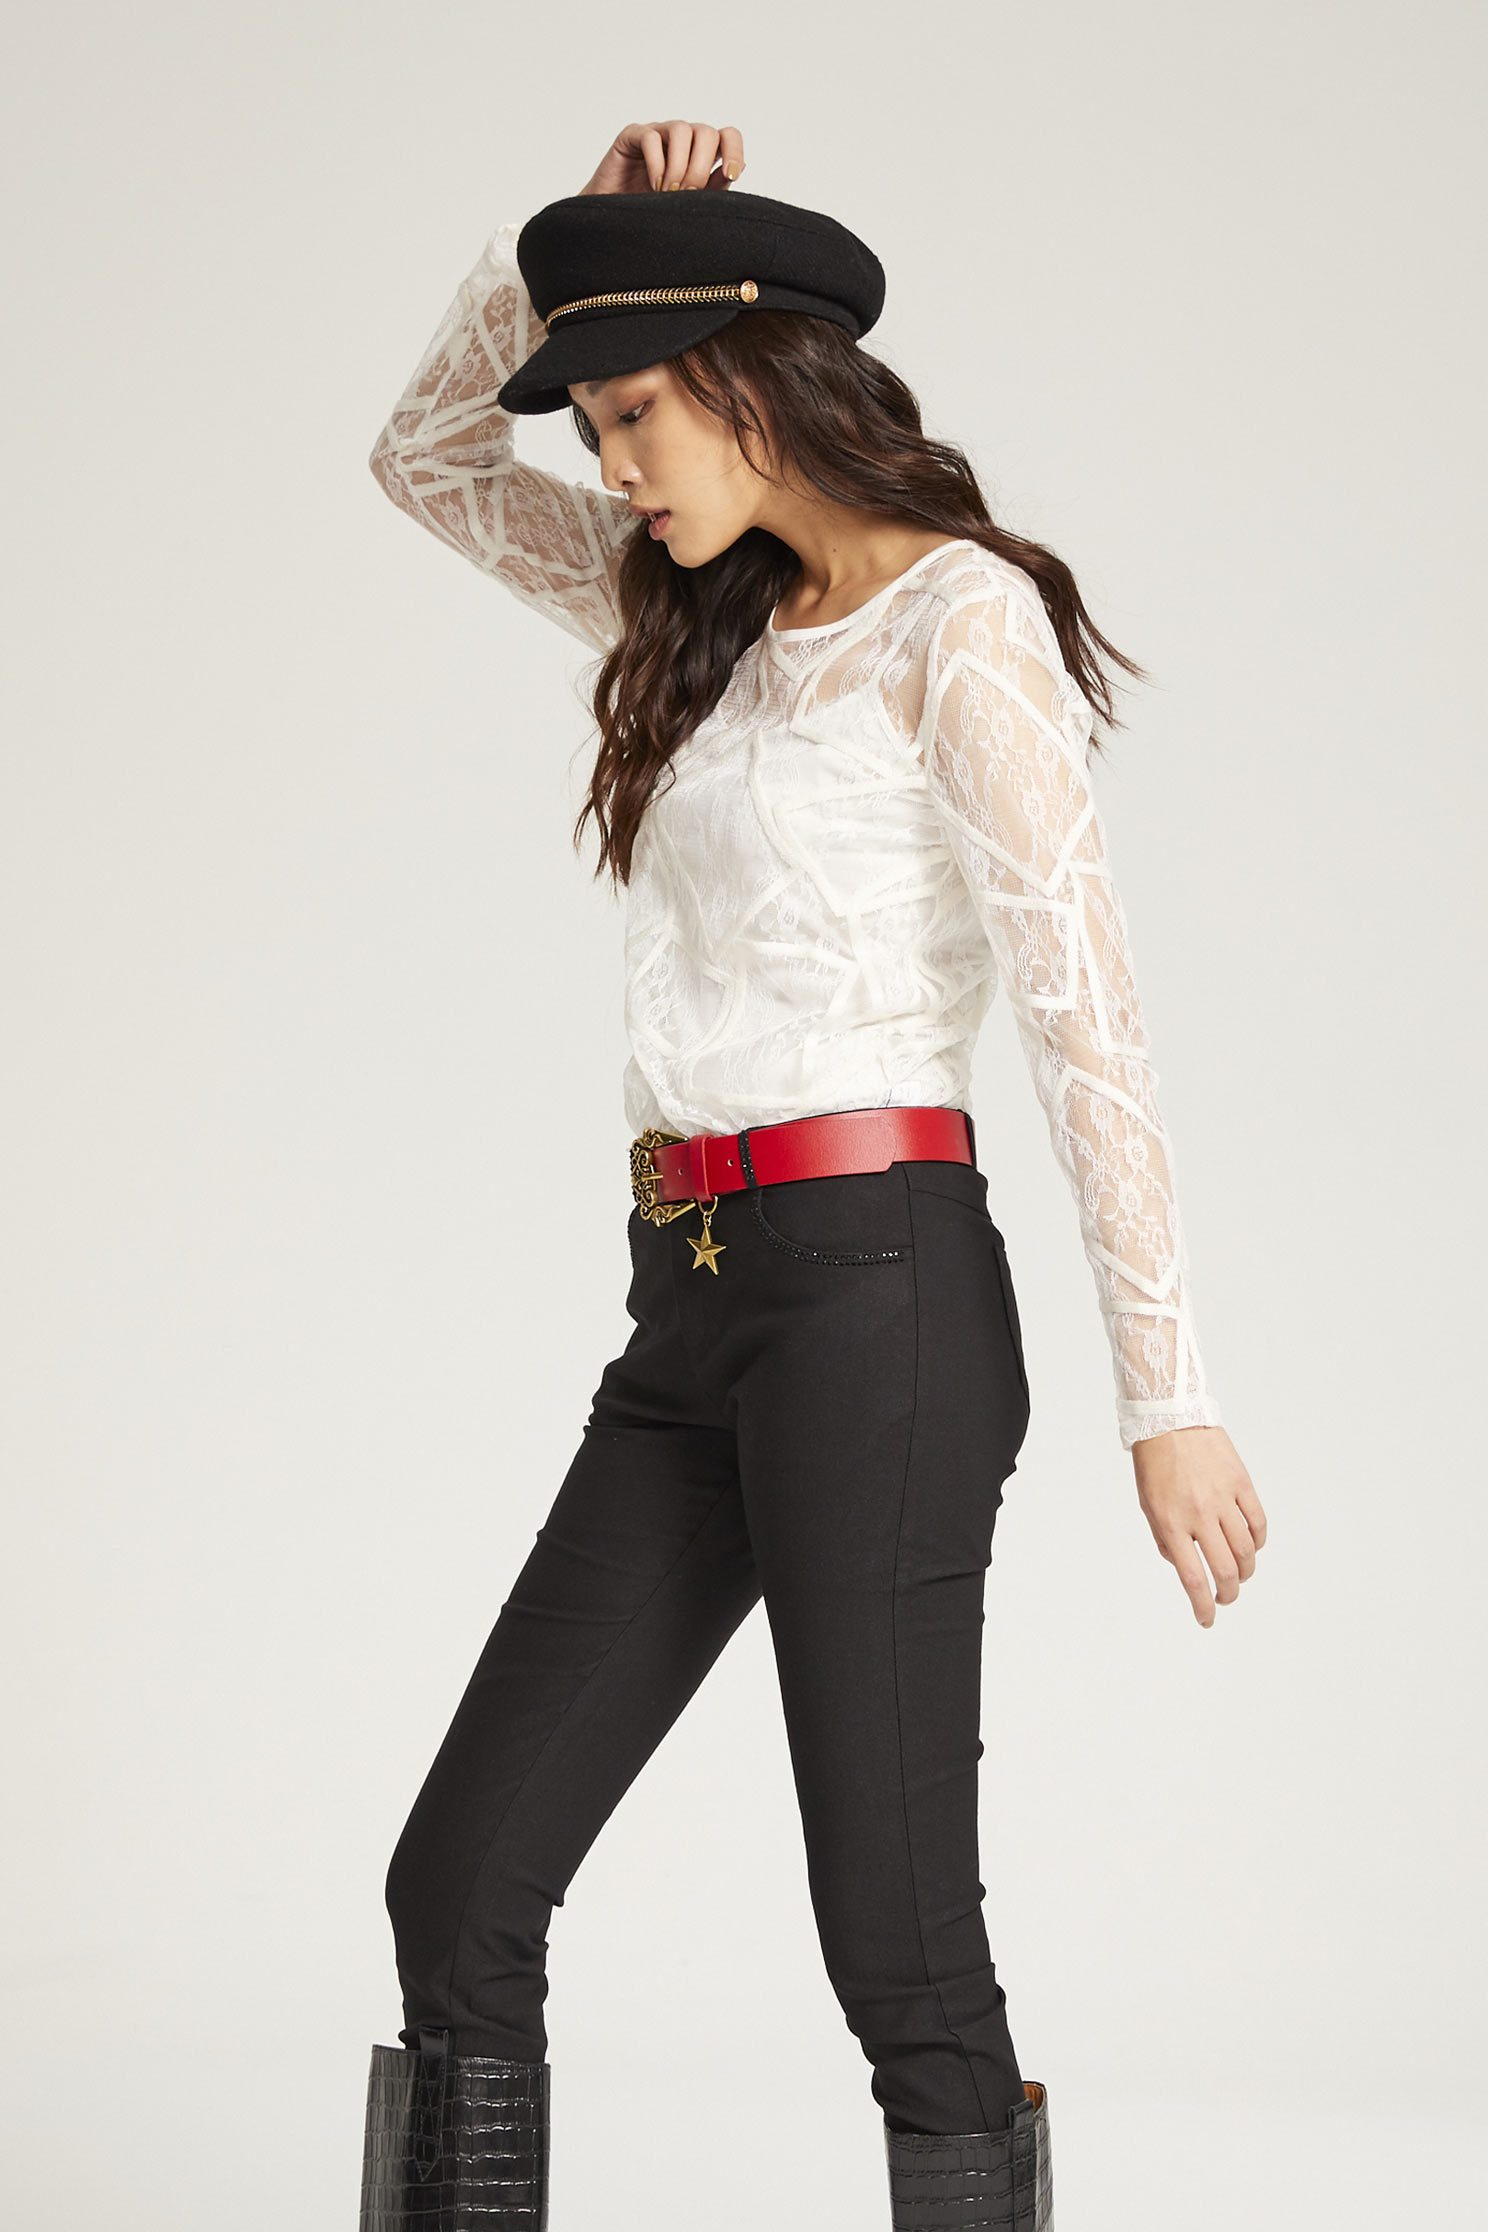 Lace Long Sleeve Top,top,whitetop,lace,lacedtop,longsleevetop